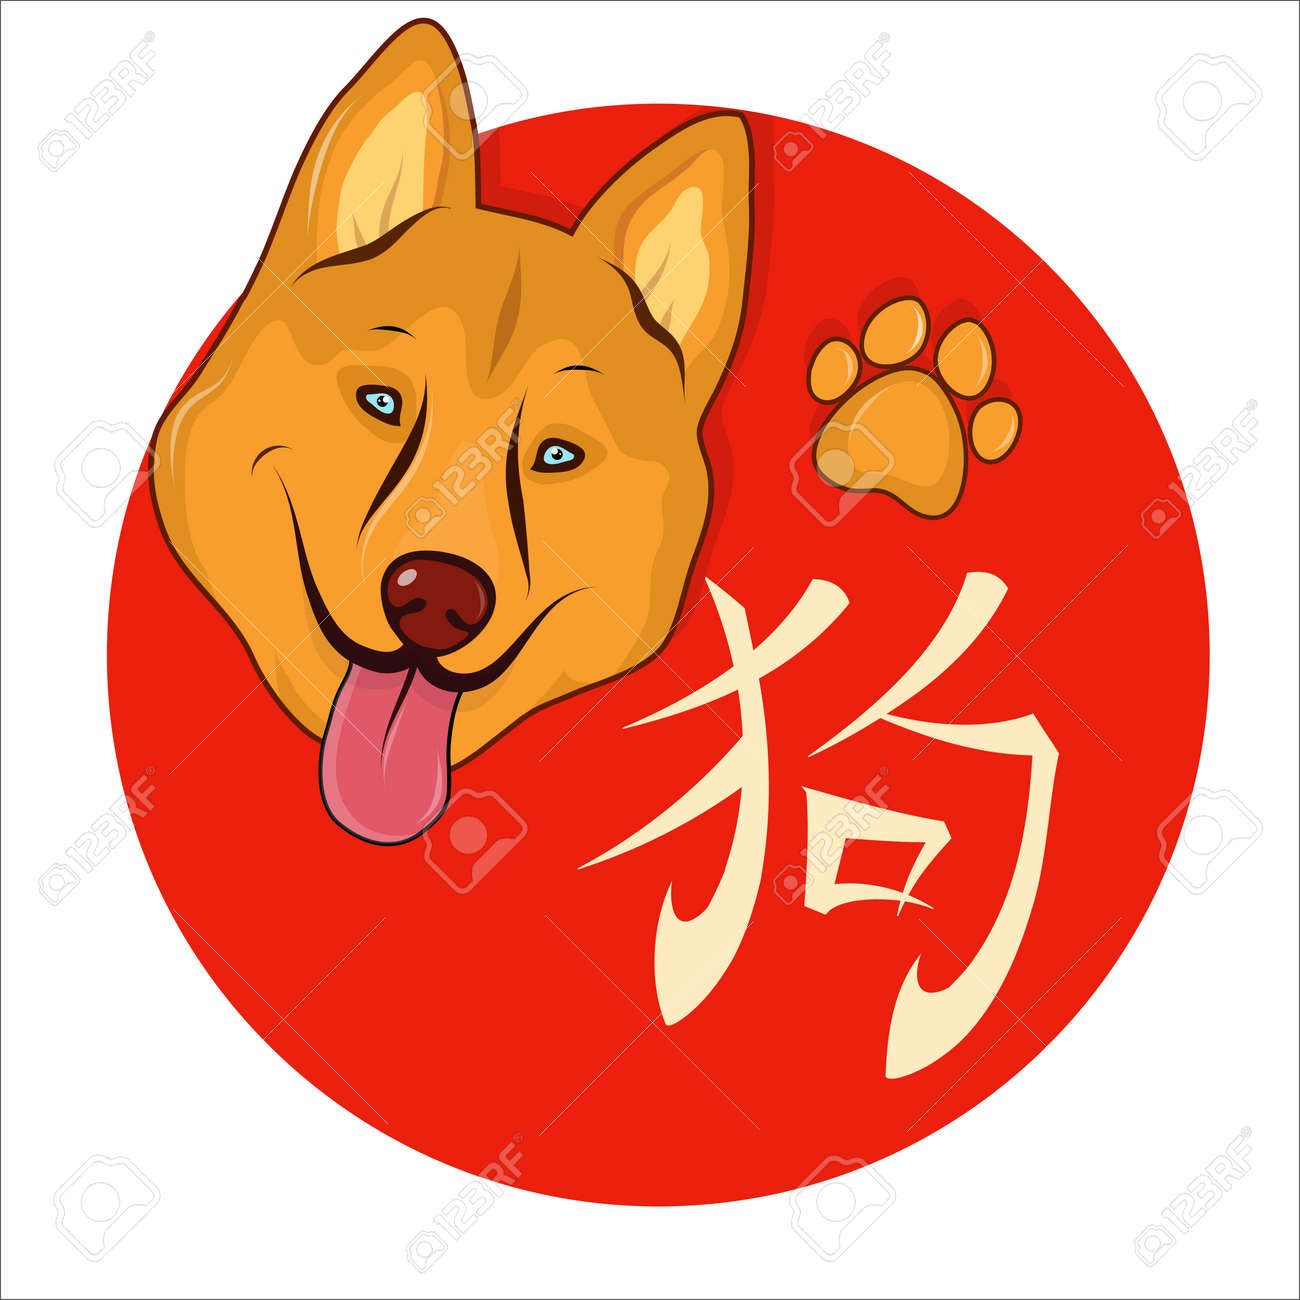 yellow dog as animal symbol of chinese new year 2018 hieroglyph translation dog stock - Chinese New Year Symbols